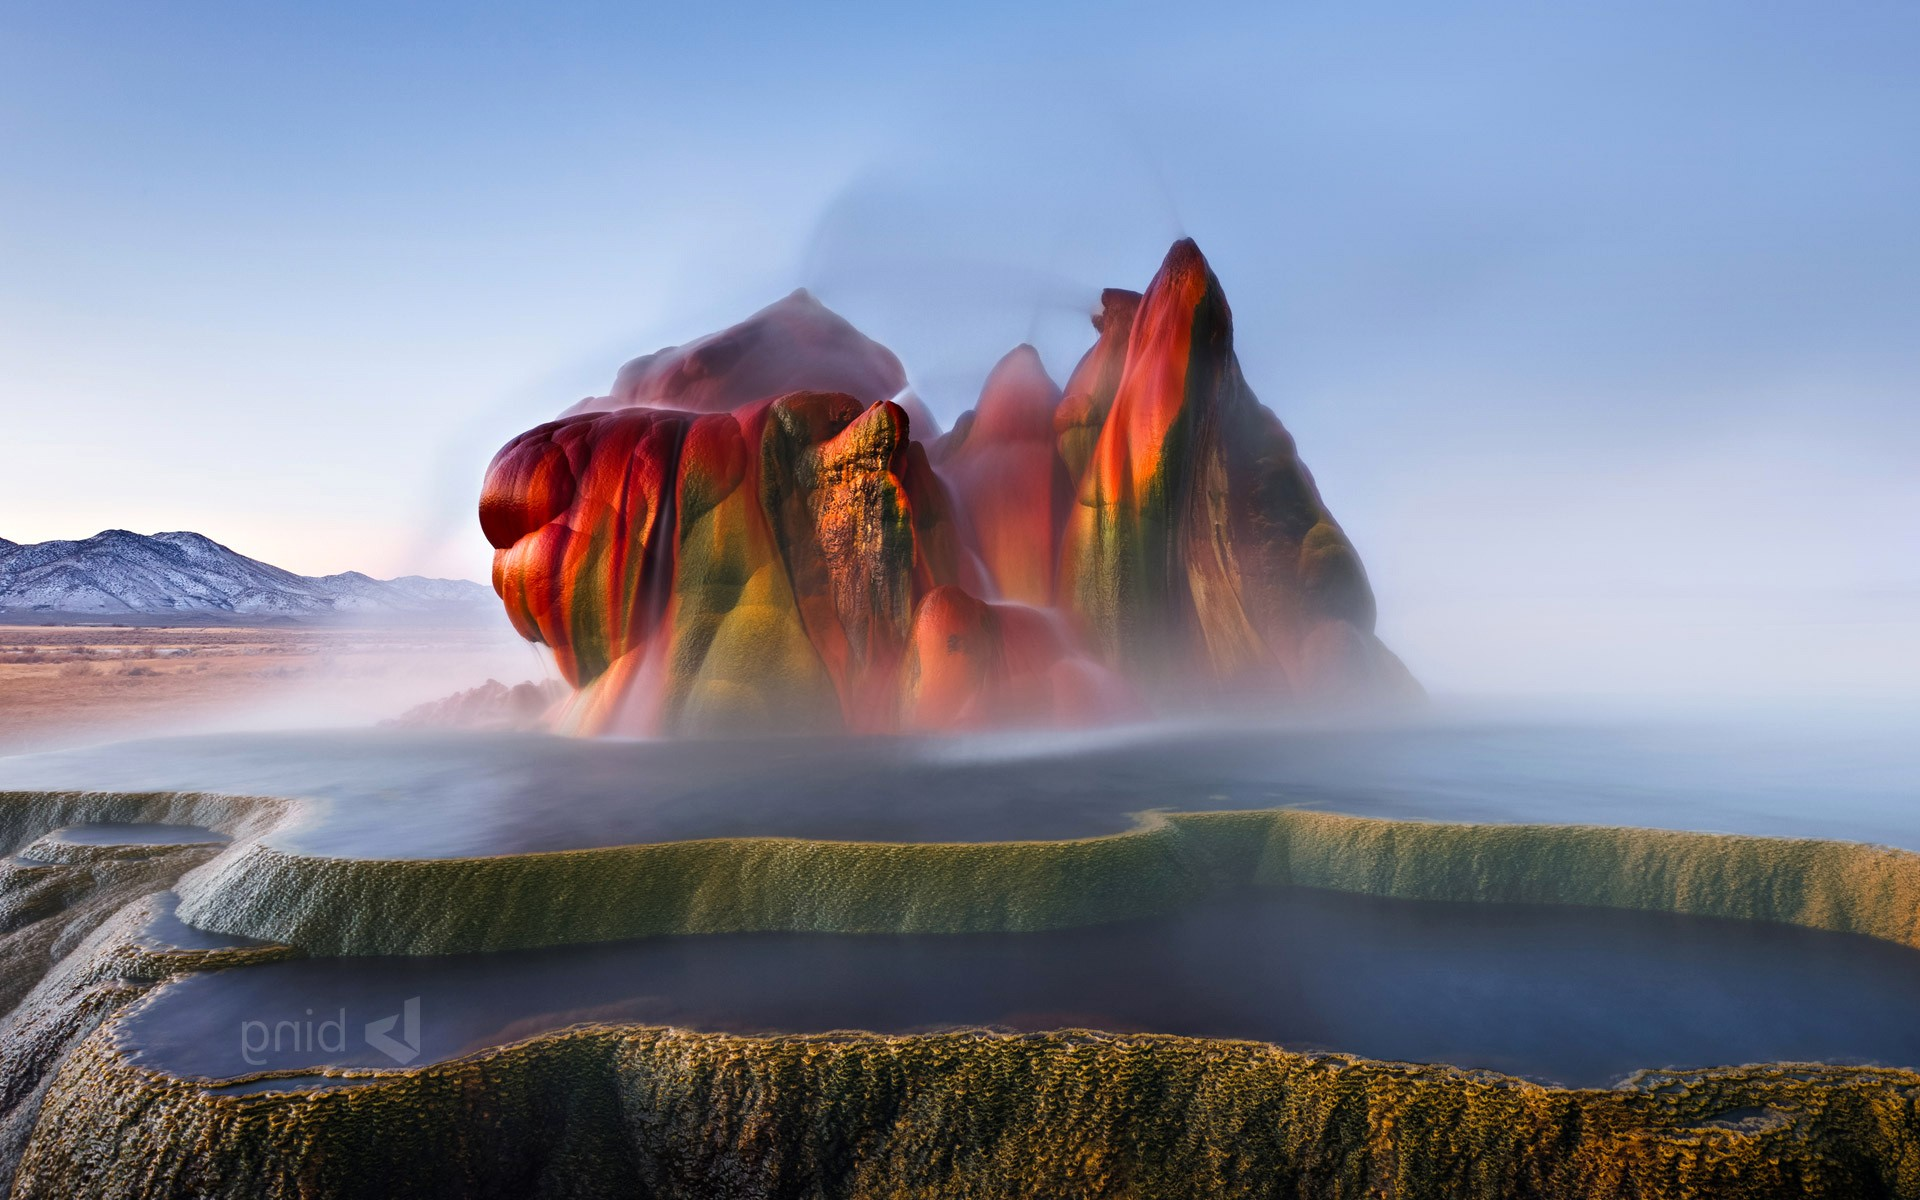 Computer Lock Screen Wallpapers Girls Fly Ranch Geyser Hd World 4k Wallpapers Images